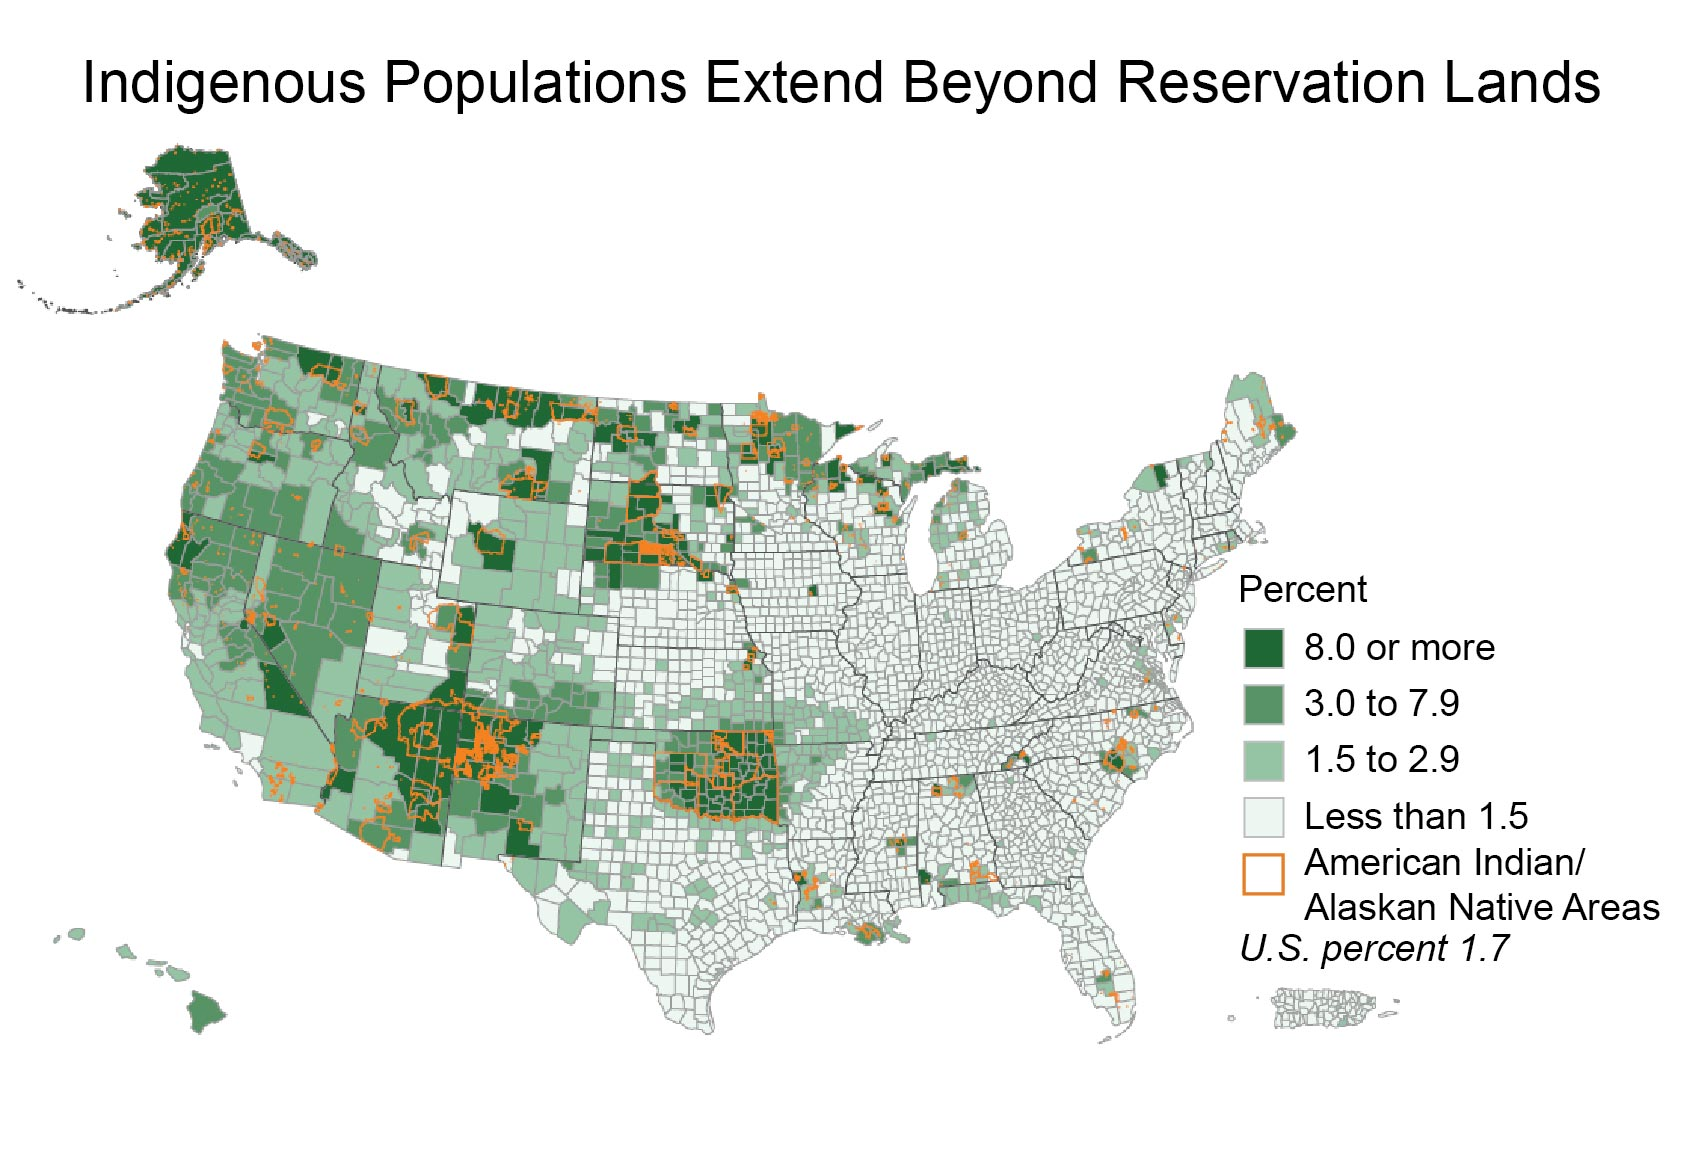 Indigenous Peoples National Climate Assessment - Map of us and canada indiginous popullationns